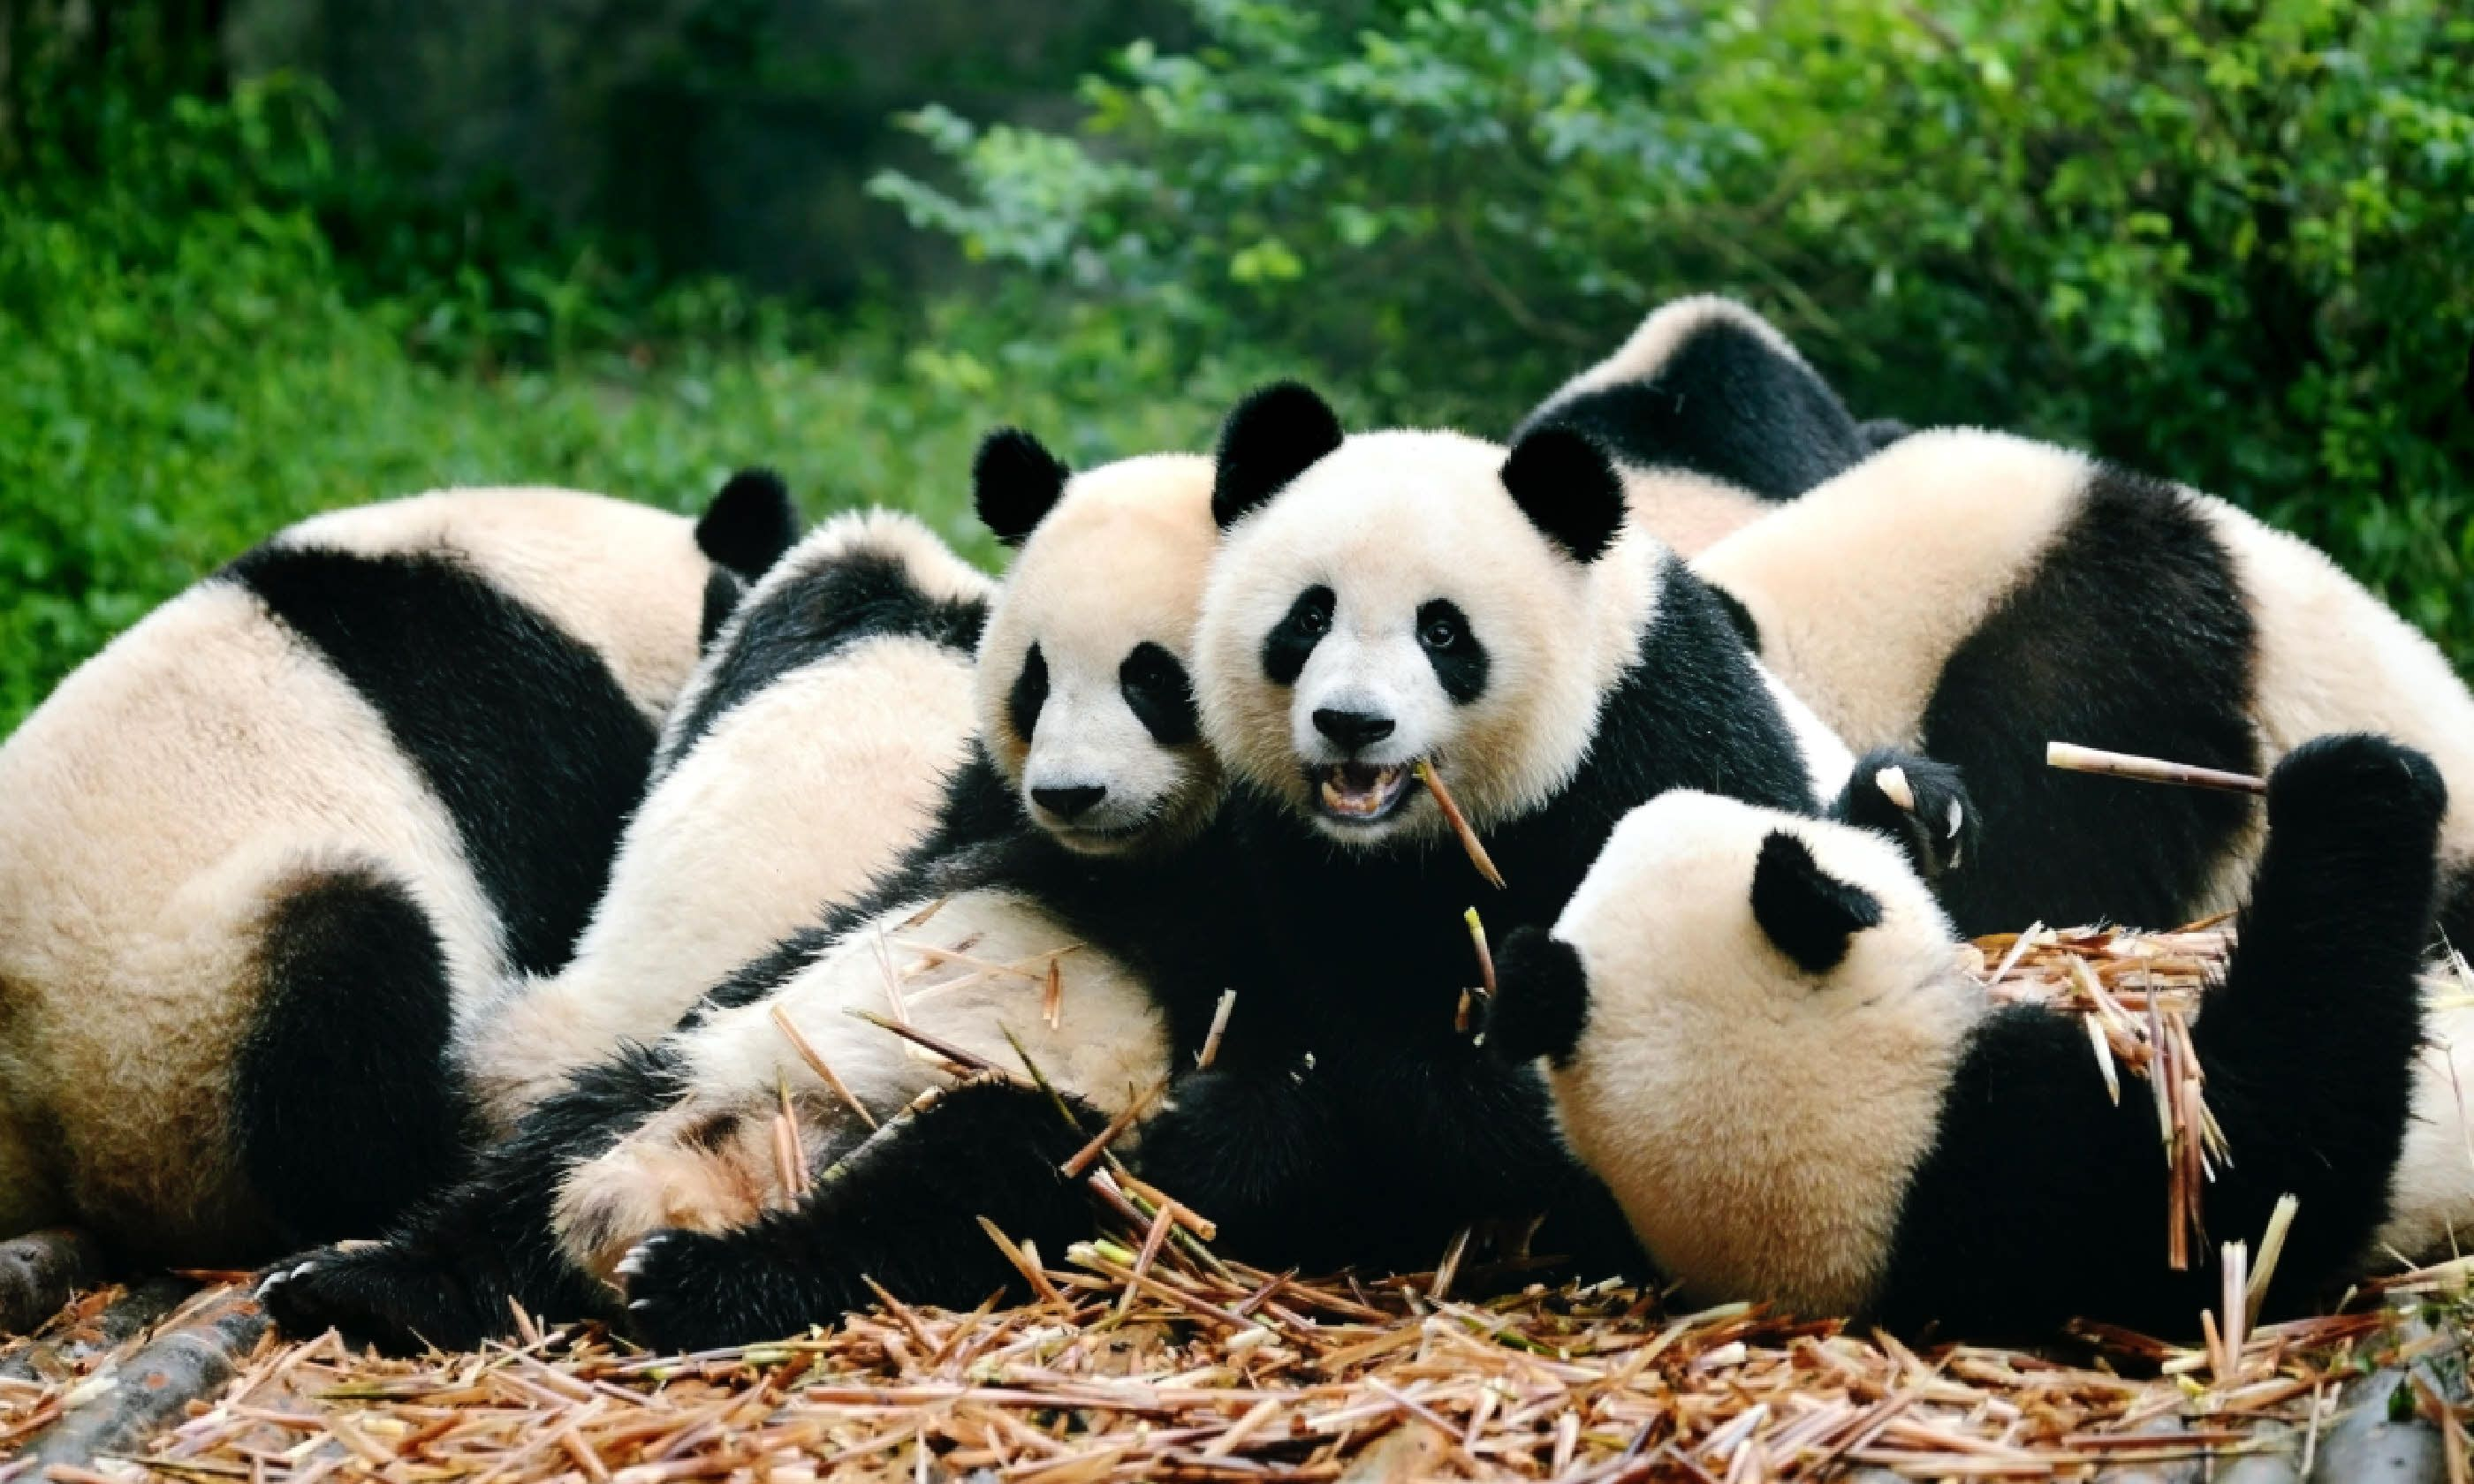 Pandas in Chengdu, China (Shutterstock)